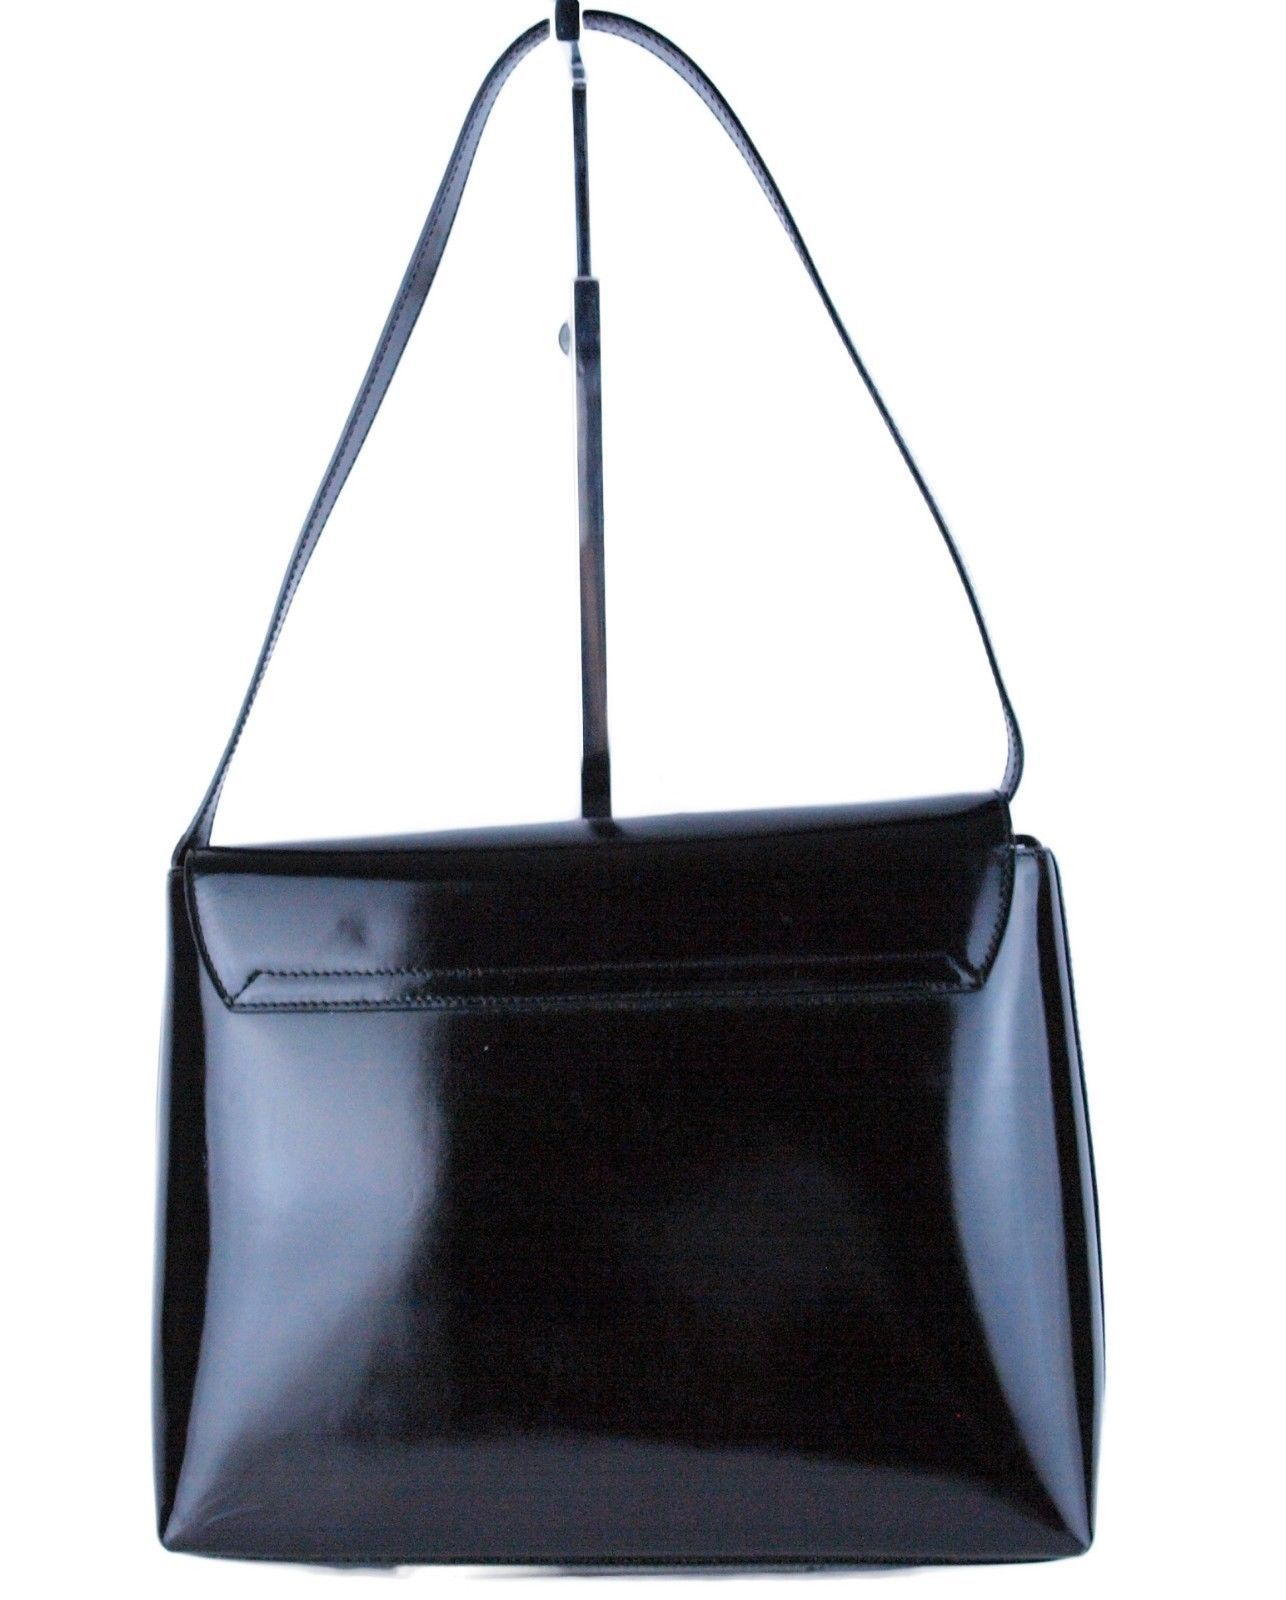 Auth GUCCI Logos Black Patent Leather Shoulder Bag Purse Italy 001.3444.1812